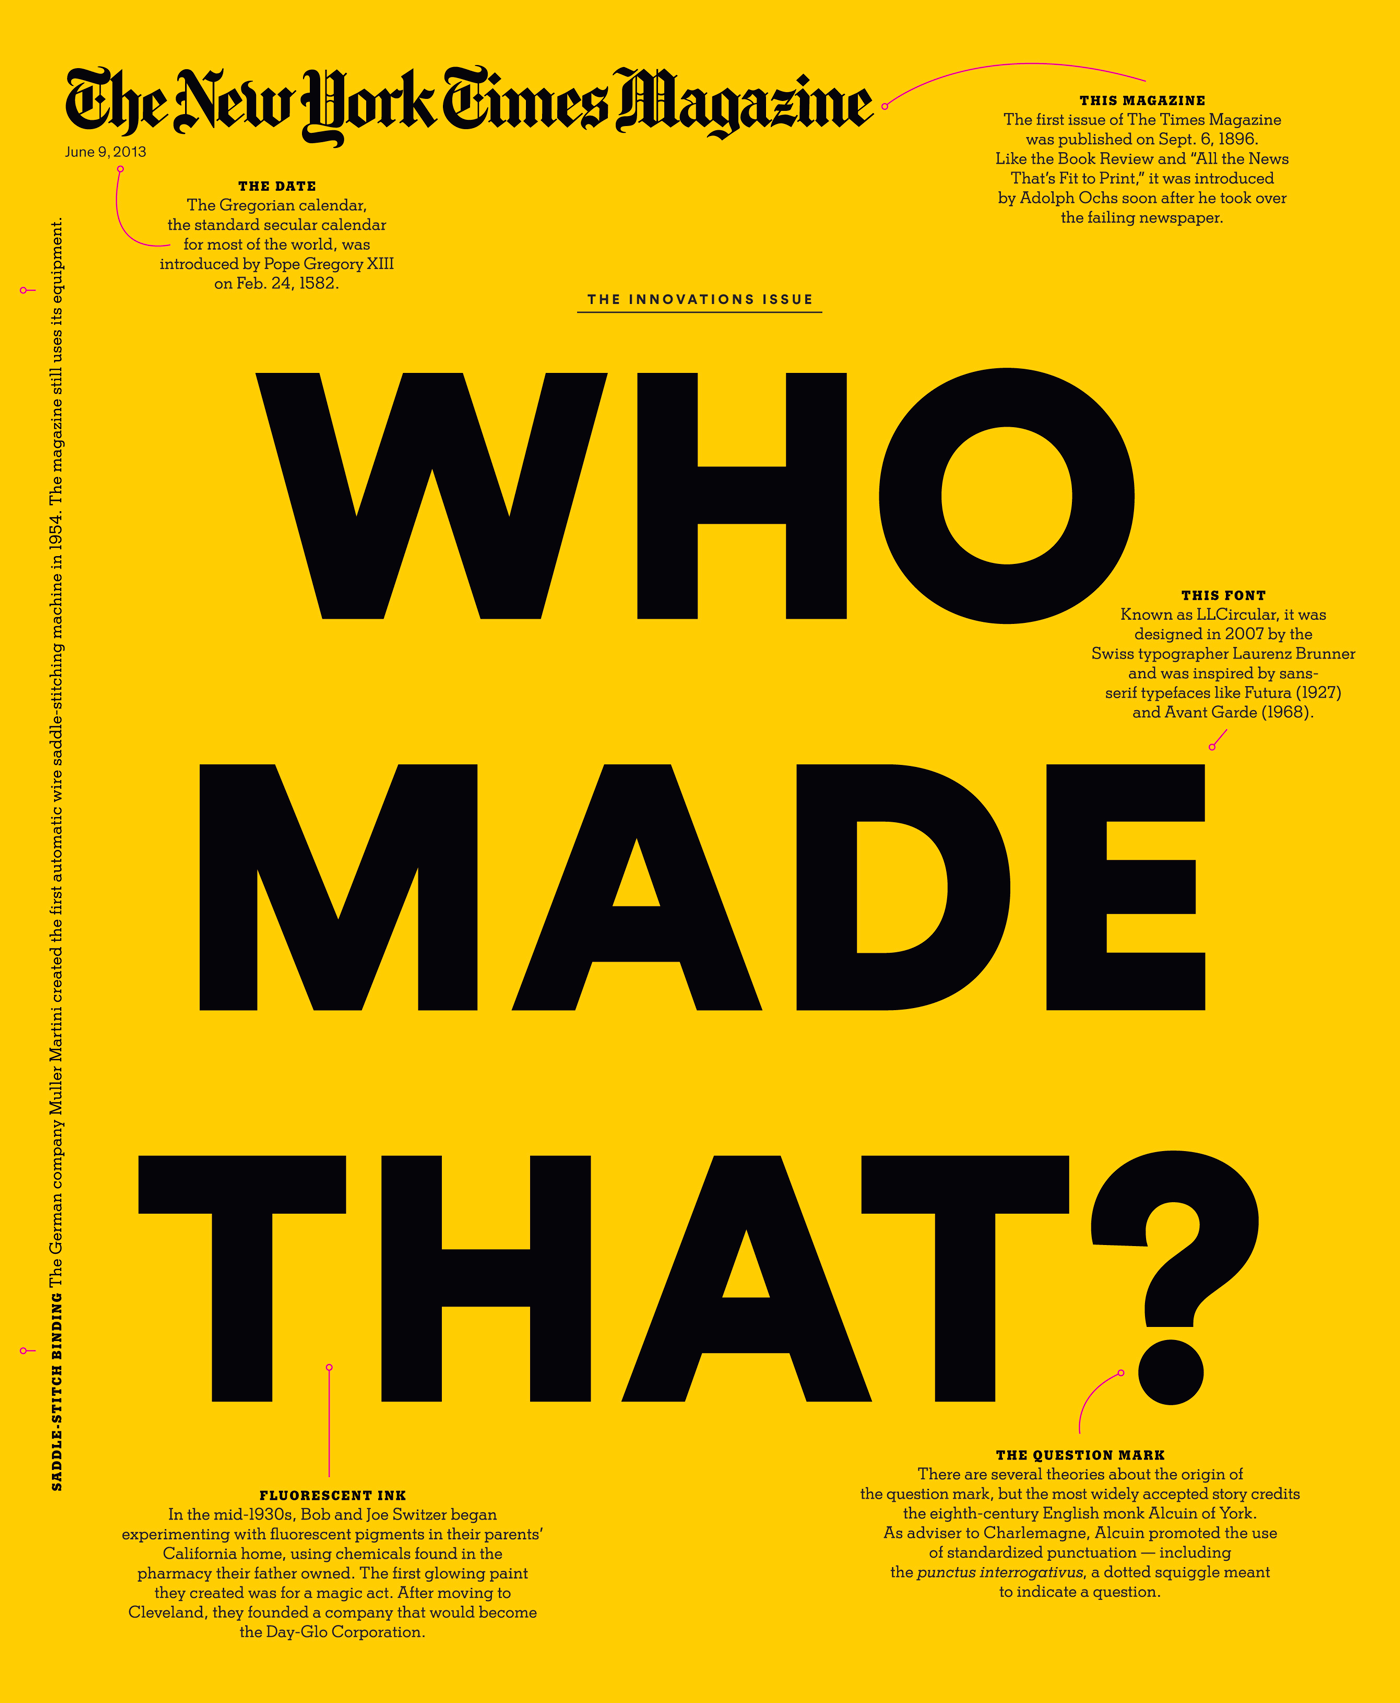 The New York Times Magazine 2013 Innovations Issue Fonts In Use